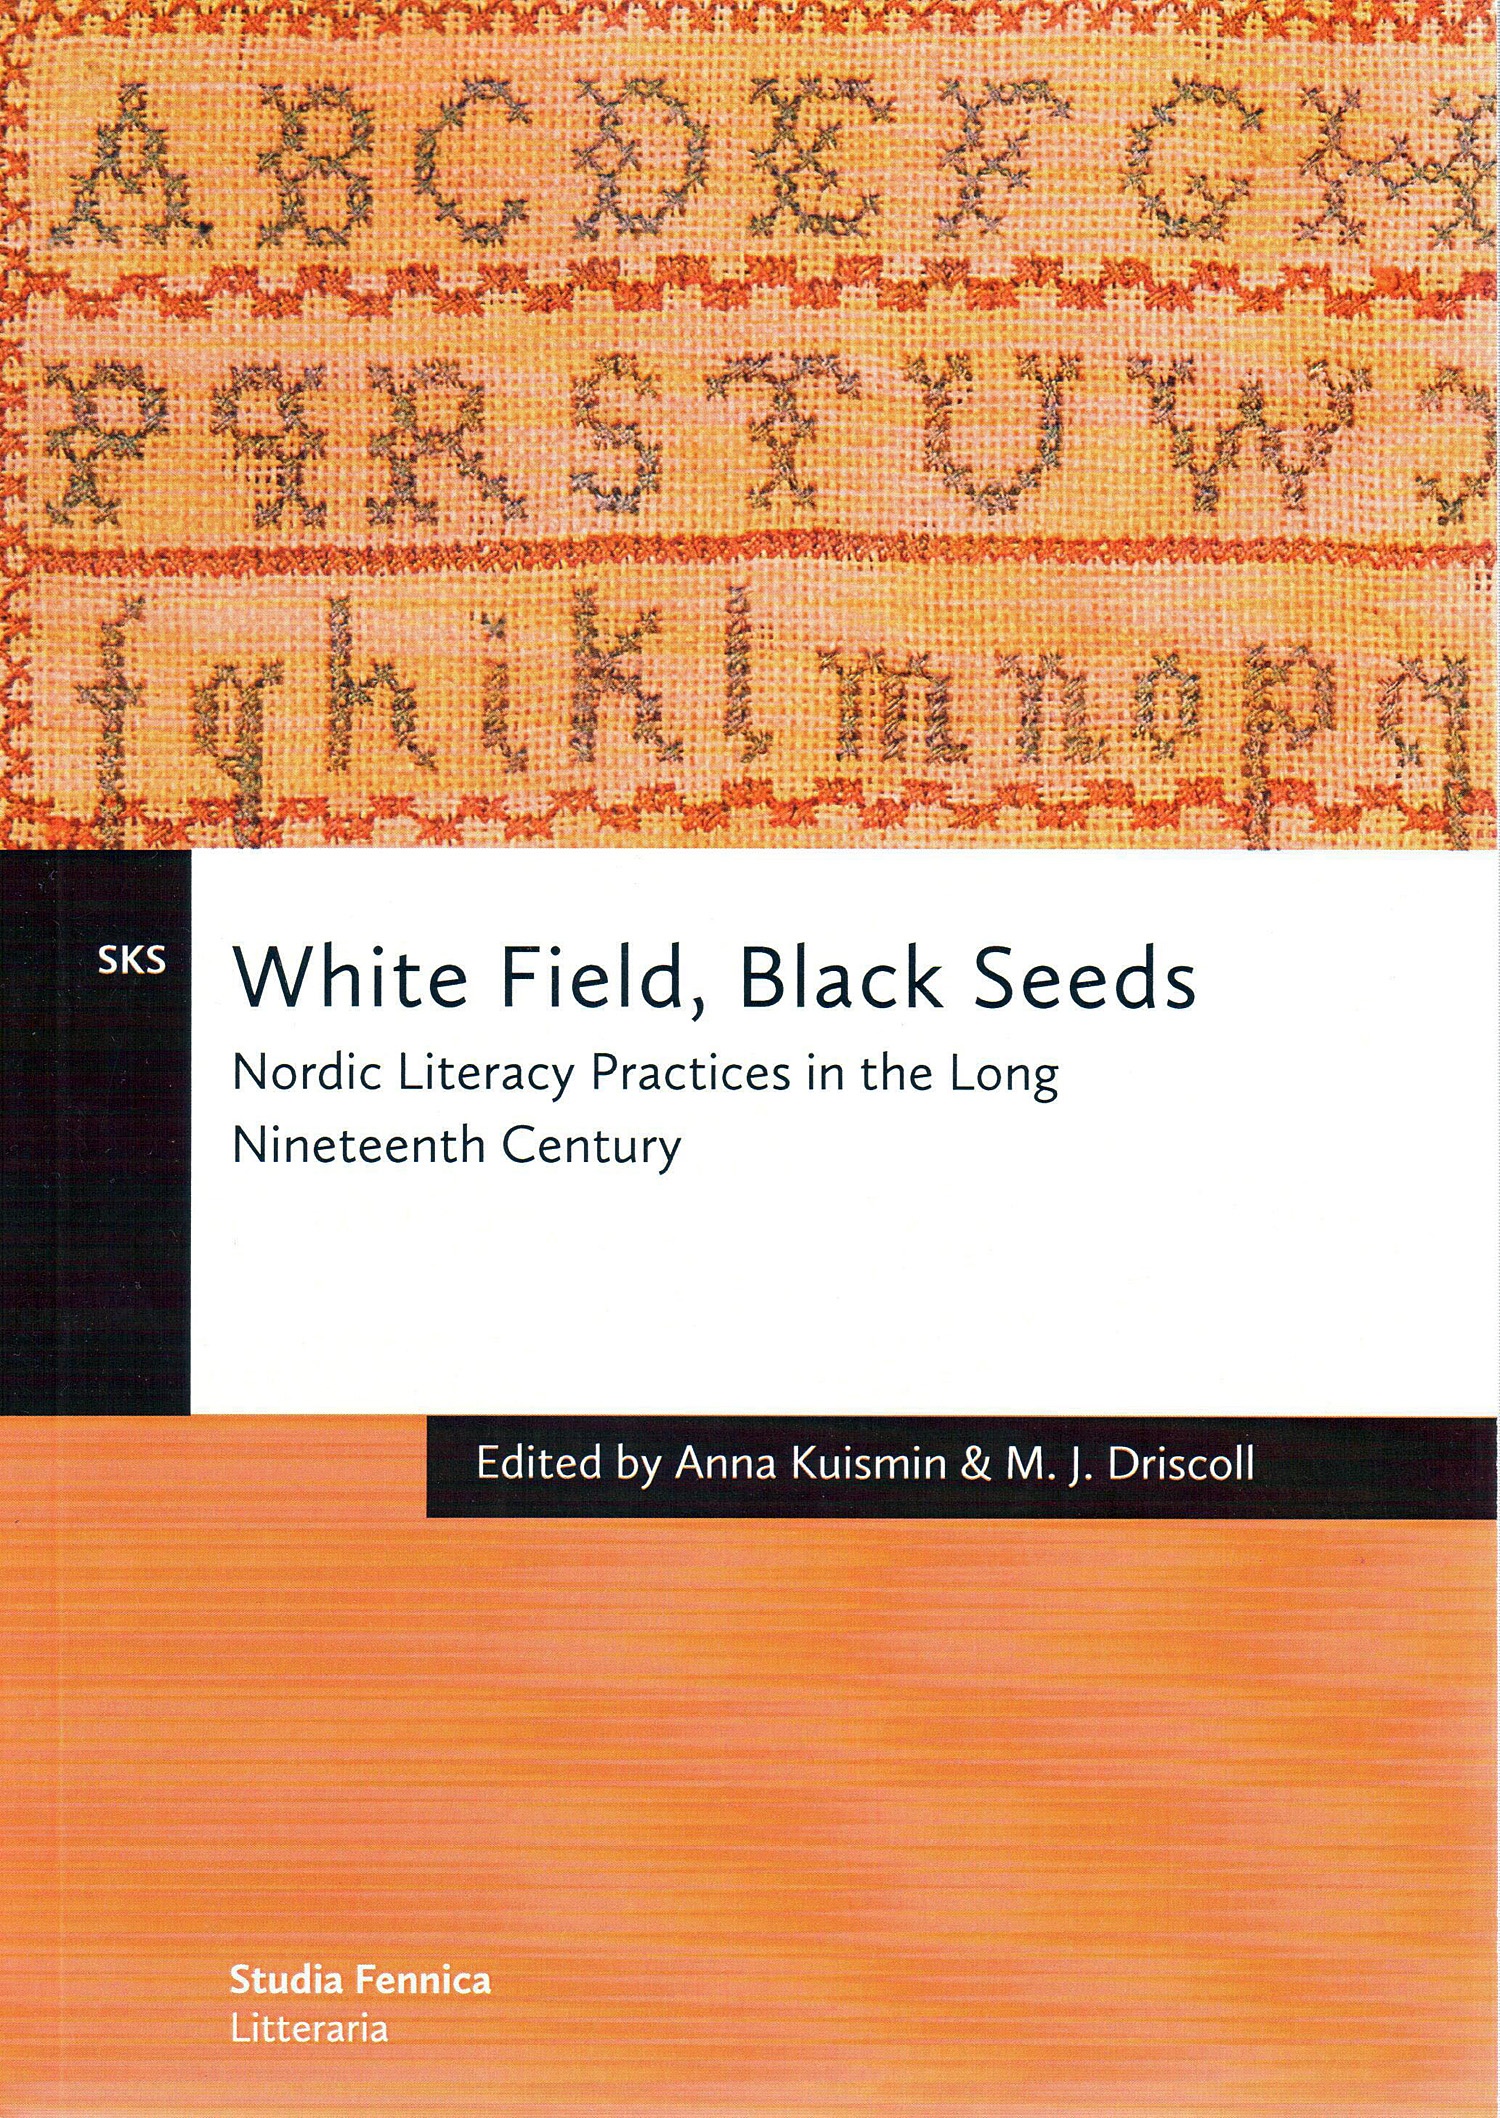 White field, black seeds (Helsinki, Finnish Literature Society: , 2013)